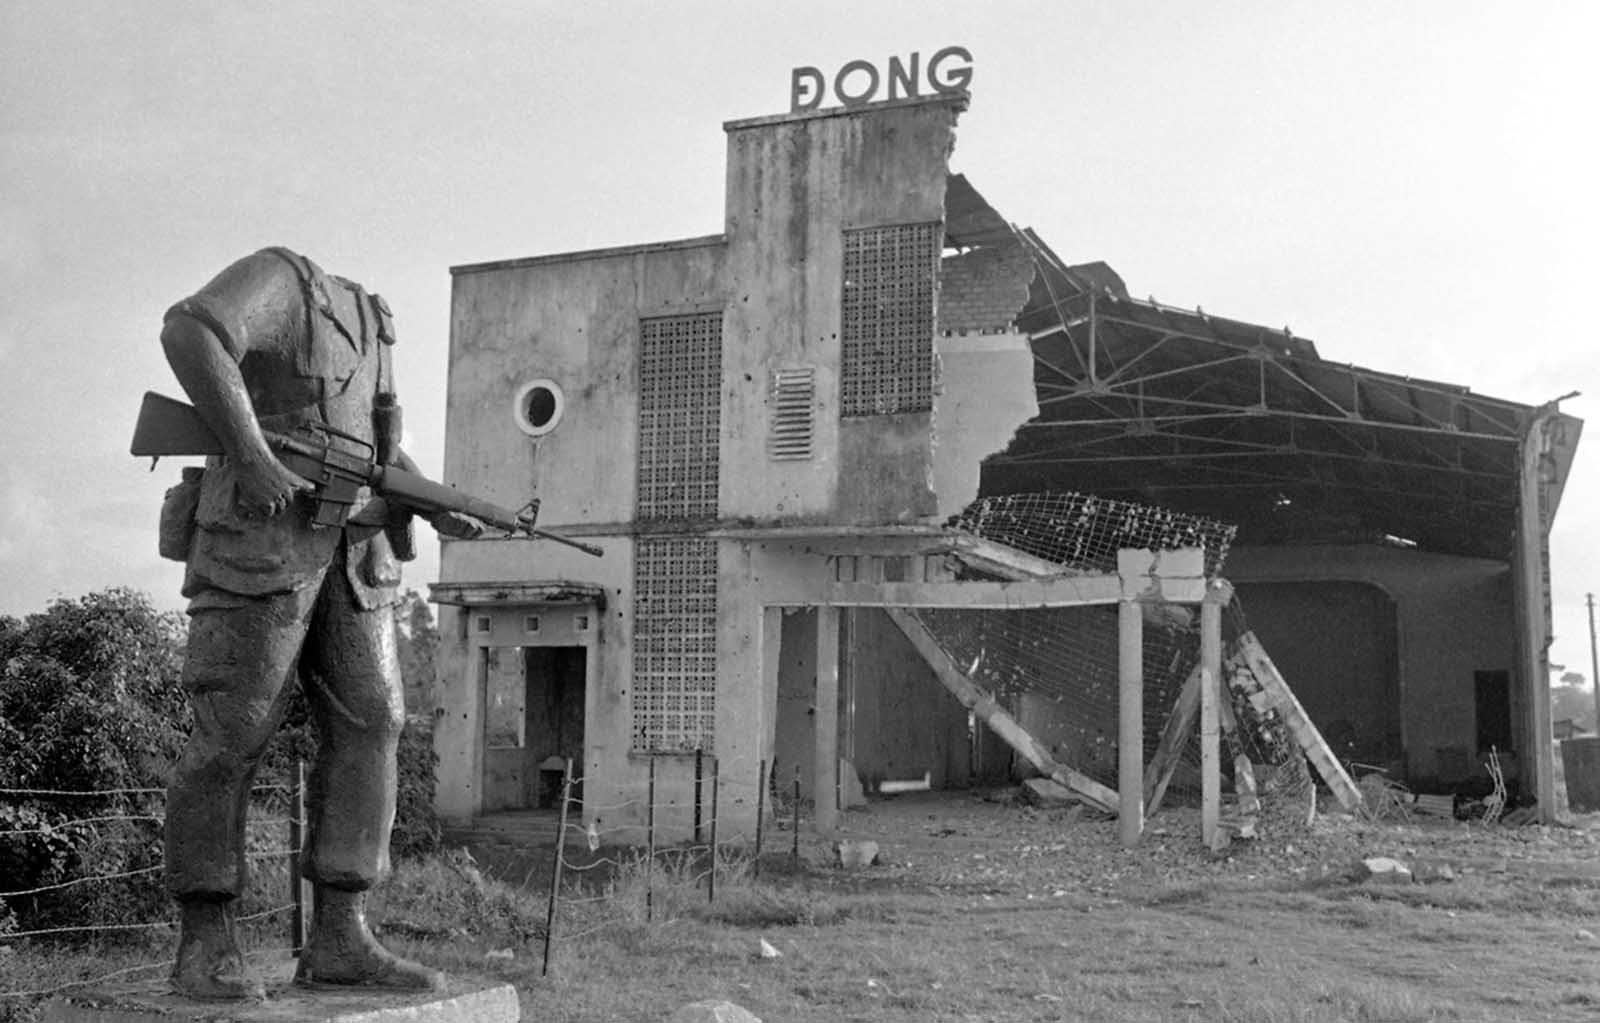 A beheaded statue of an American soldier stands next to a bombed-out theater near the district town of Cu Chi, northwest of Saigon, on December 13, 1972. The statue was placed by troops of the U.S. 25th Infantry Division before they were withdrawn from Vietnam two years earlier. Its head was lost in the explosion that destroyed the theater in background.